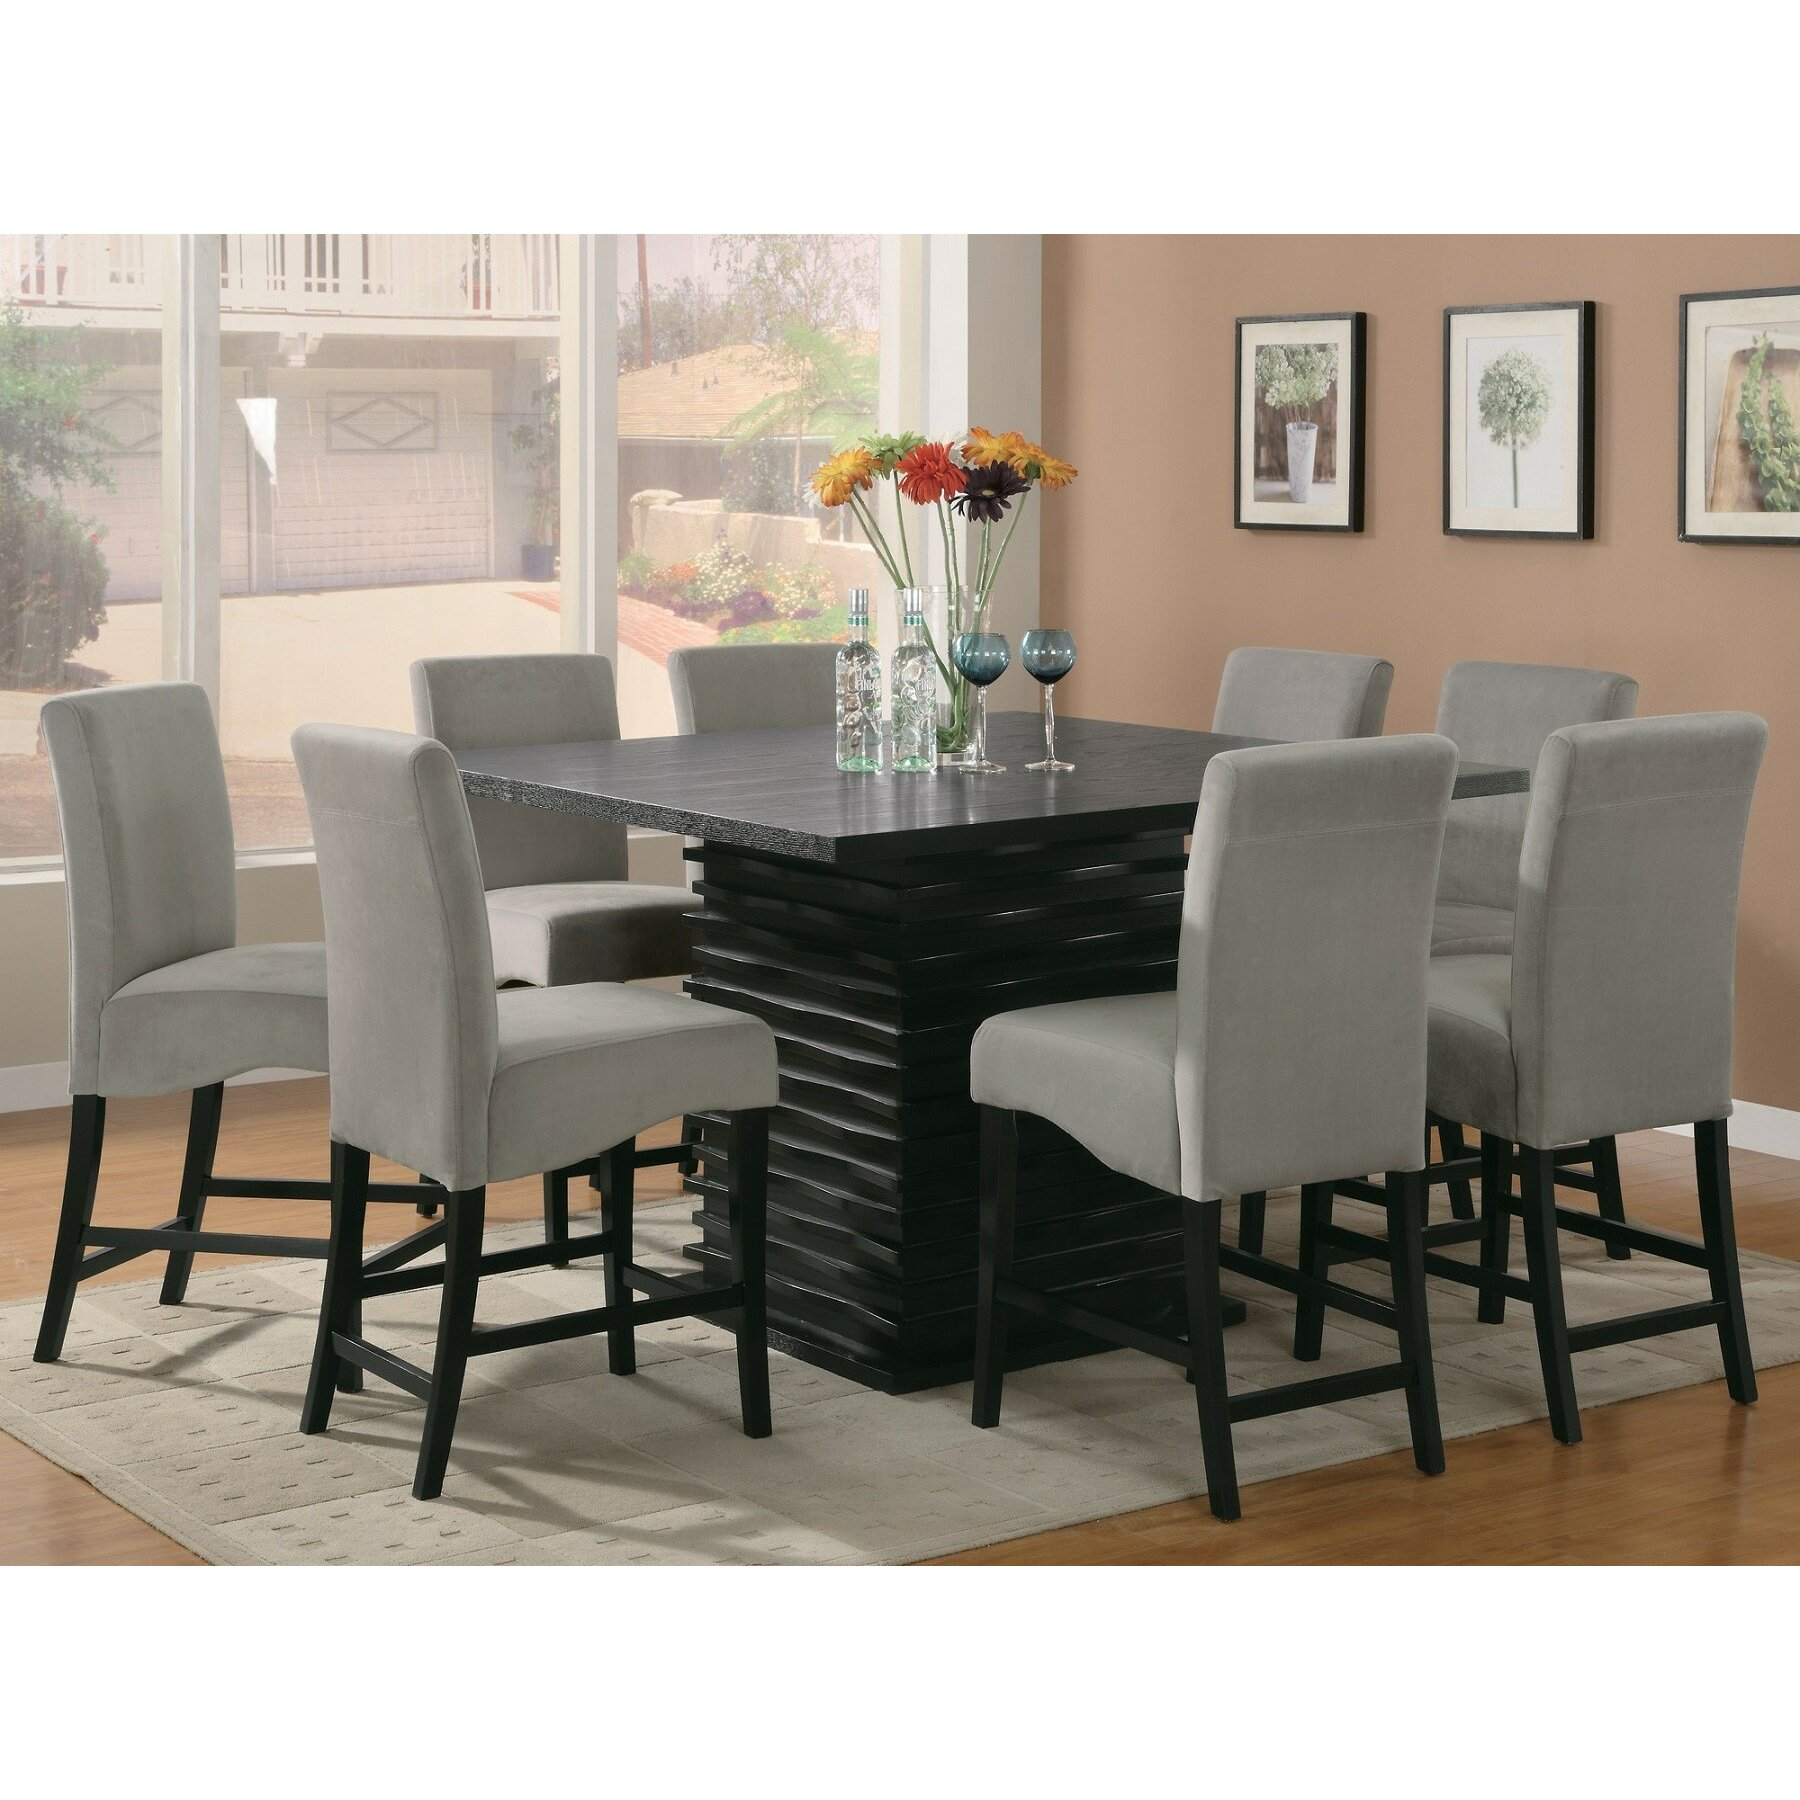 Industrial Counter Height Dining Table Modern Dining Room Sets Youll Love Wayfair